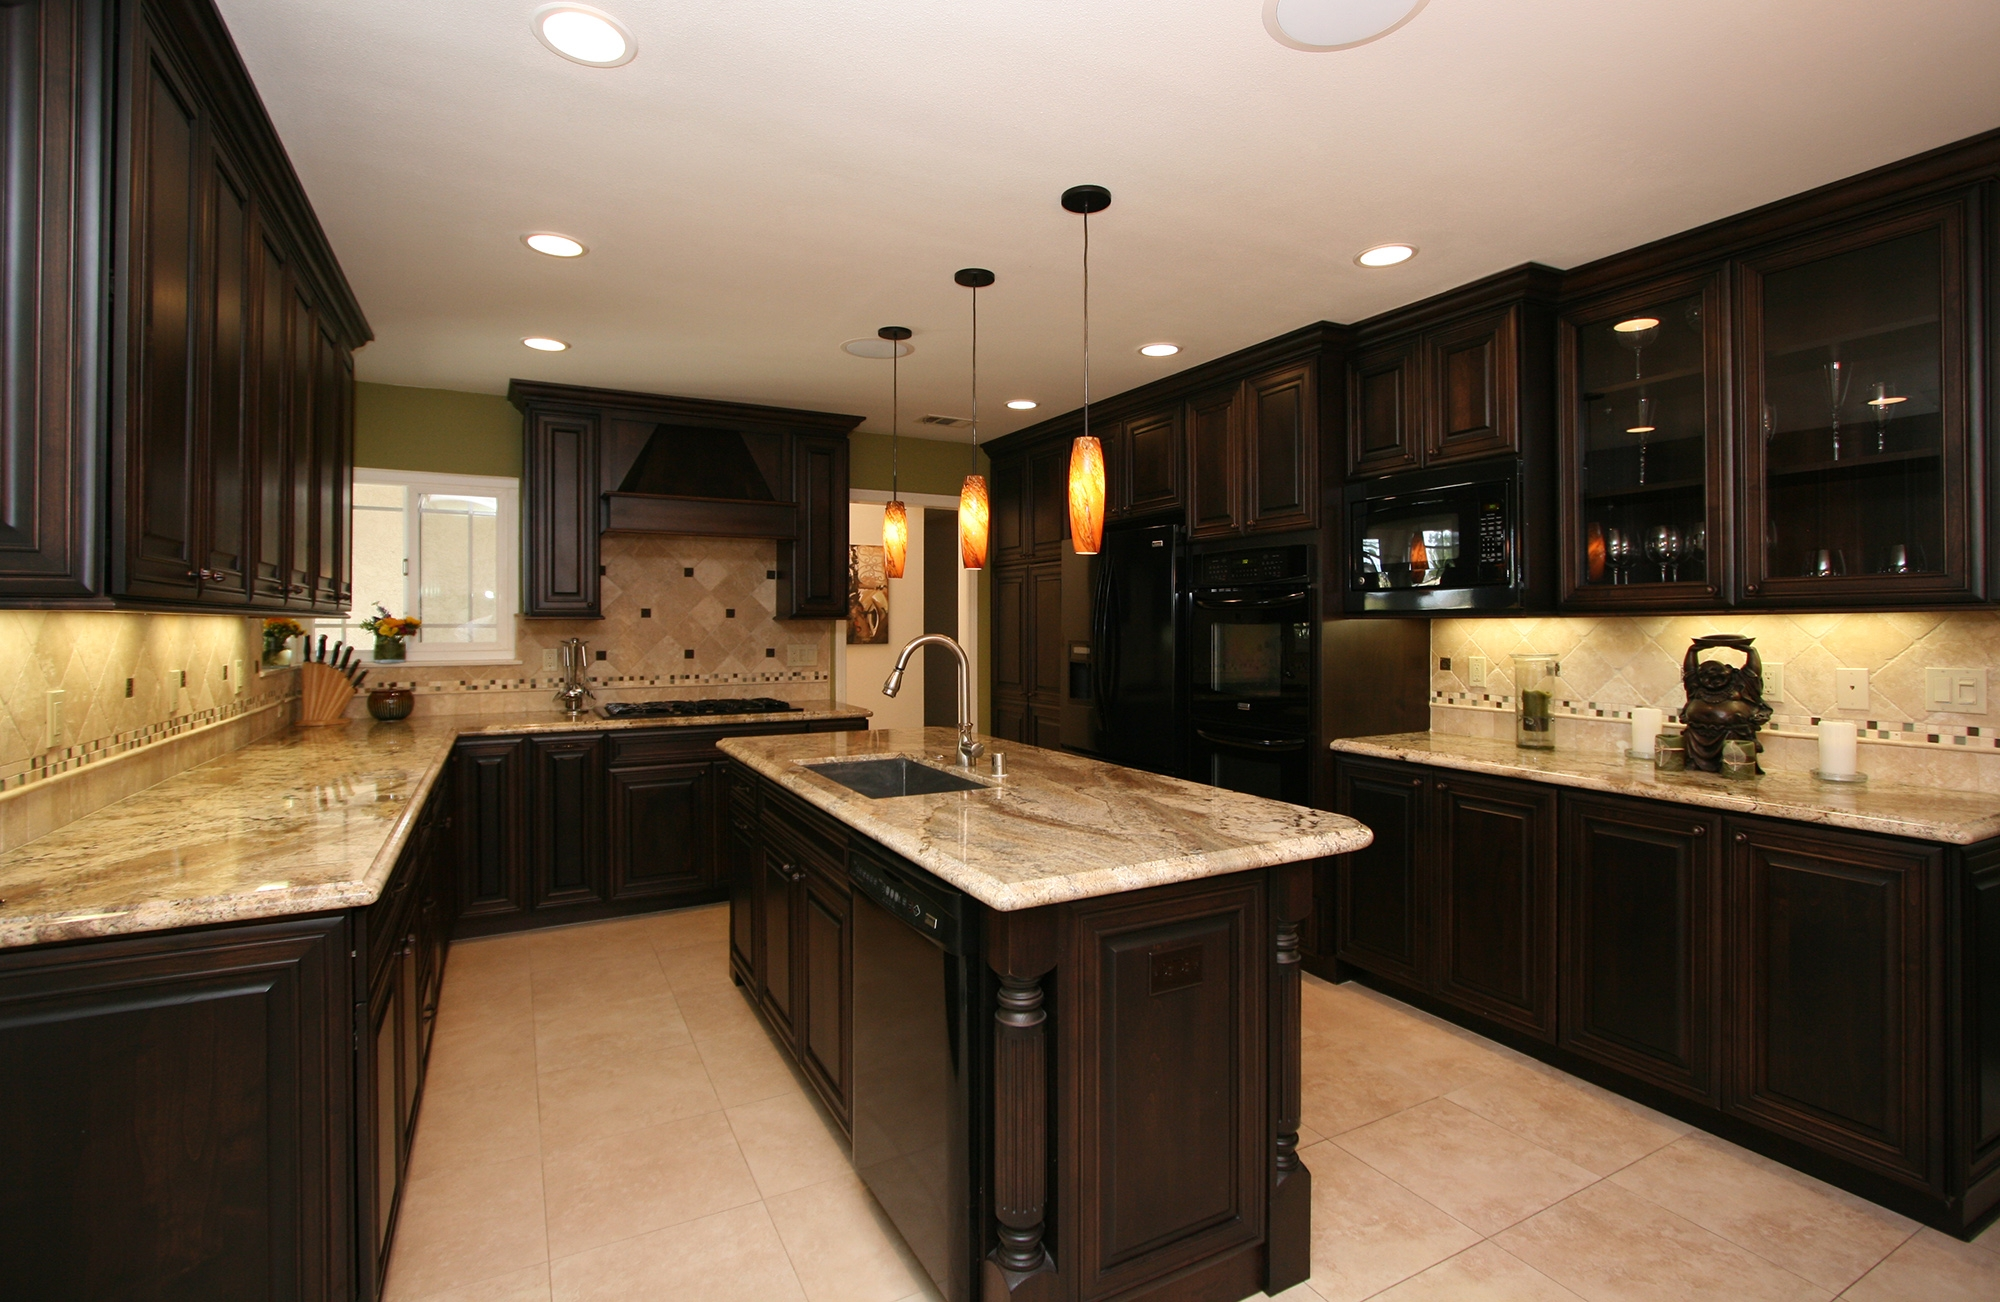 Permalink to Most Popular Color For Kitchen Cabinets 2015